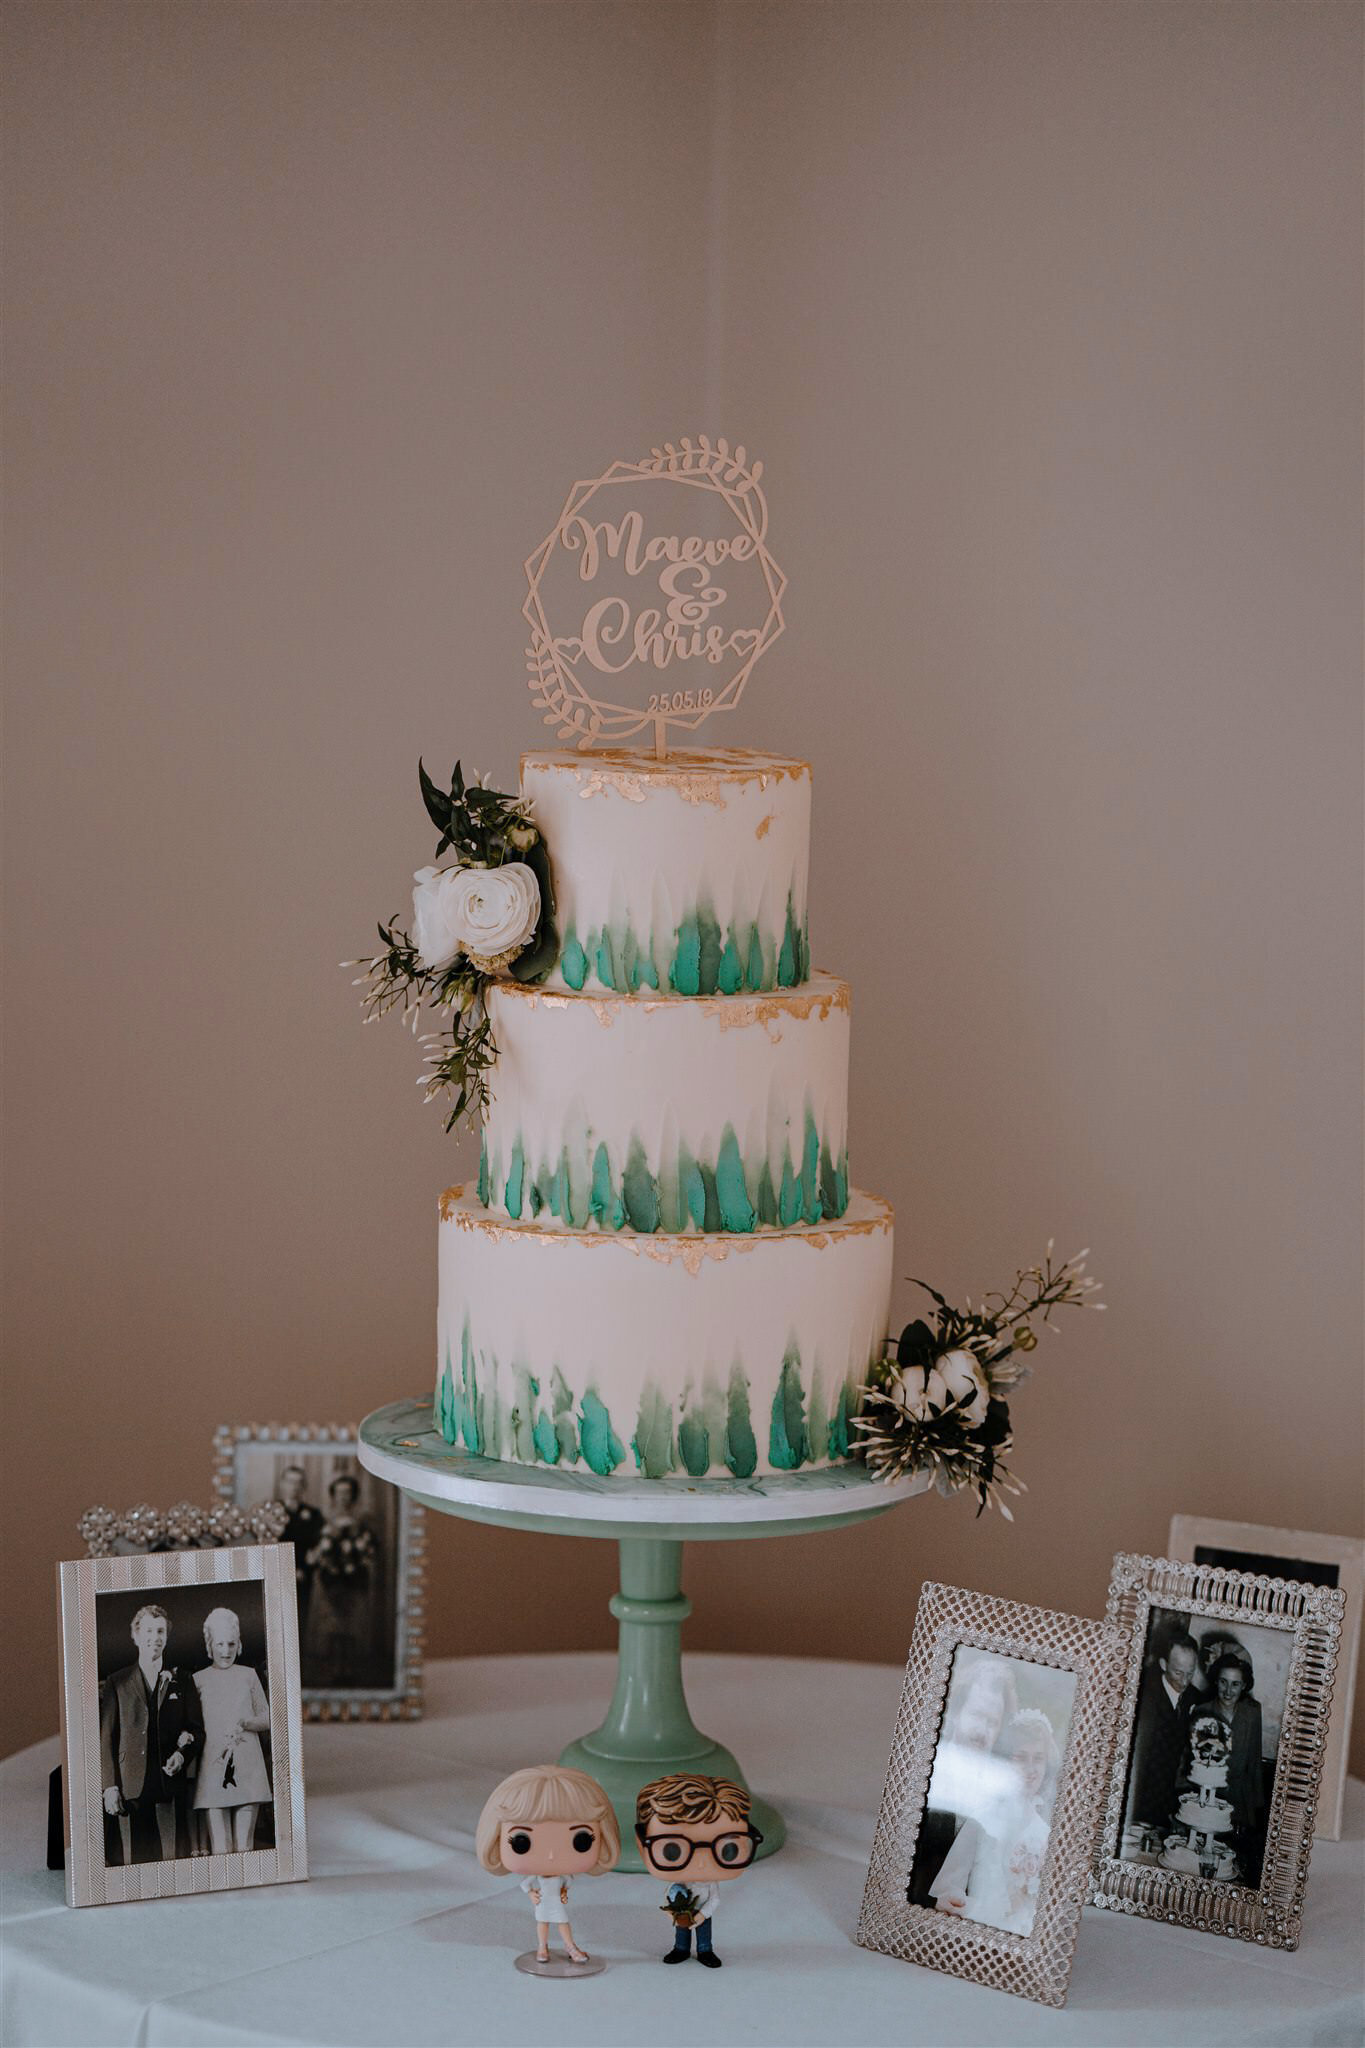 Lily pink bakery 3 tier weddimg cake elegant simple white teal